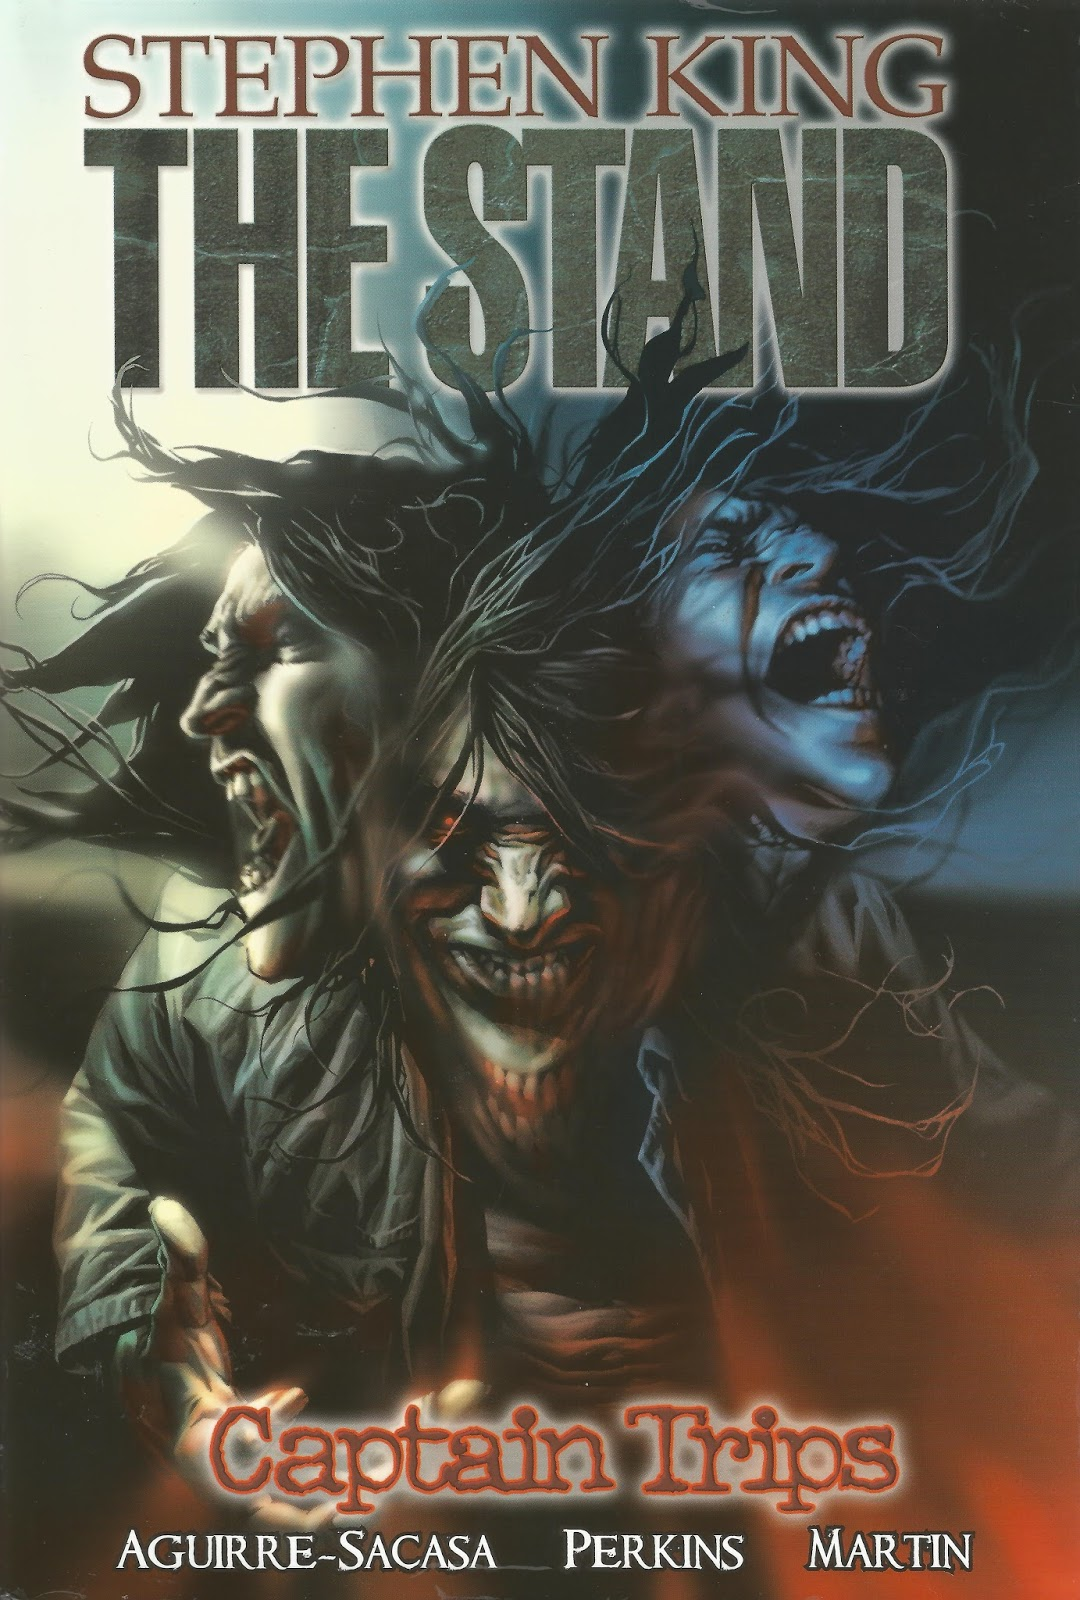 Cover To The Premiere Hardback Edition, Art By Lee Bermejo And Laura Martin